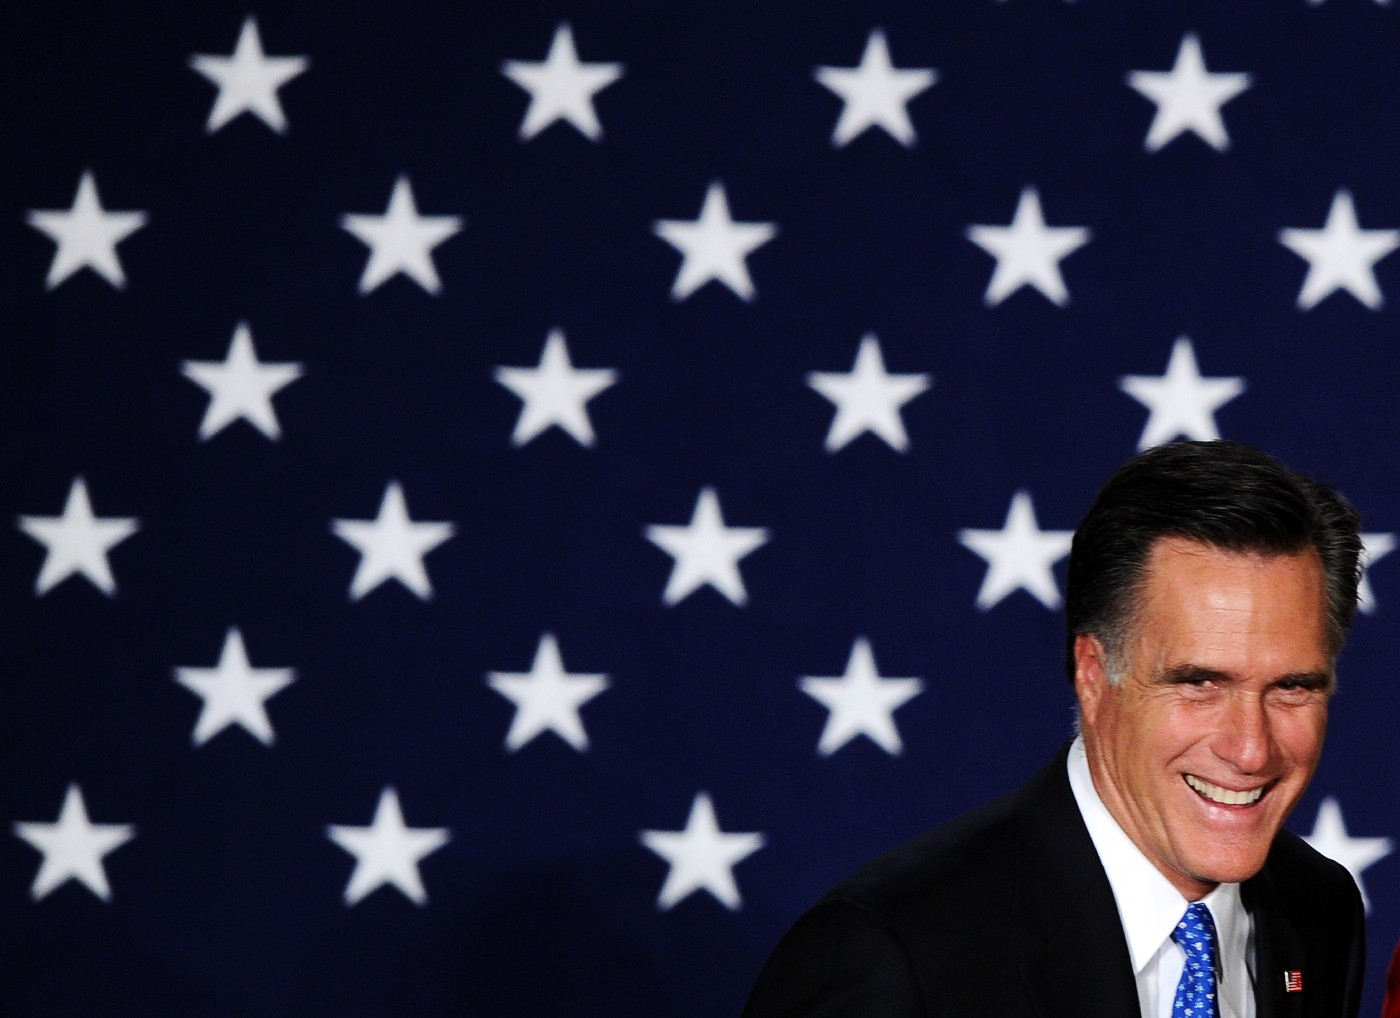 Mitt Romney arriving at  rally in Des Moines, Iowa, on Jan. 3, 2012.